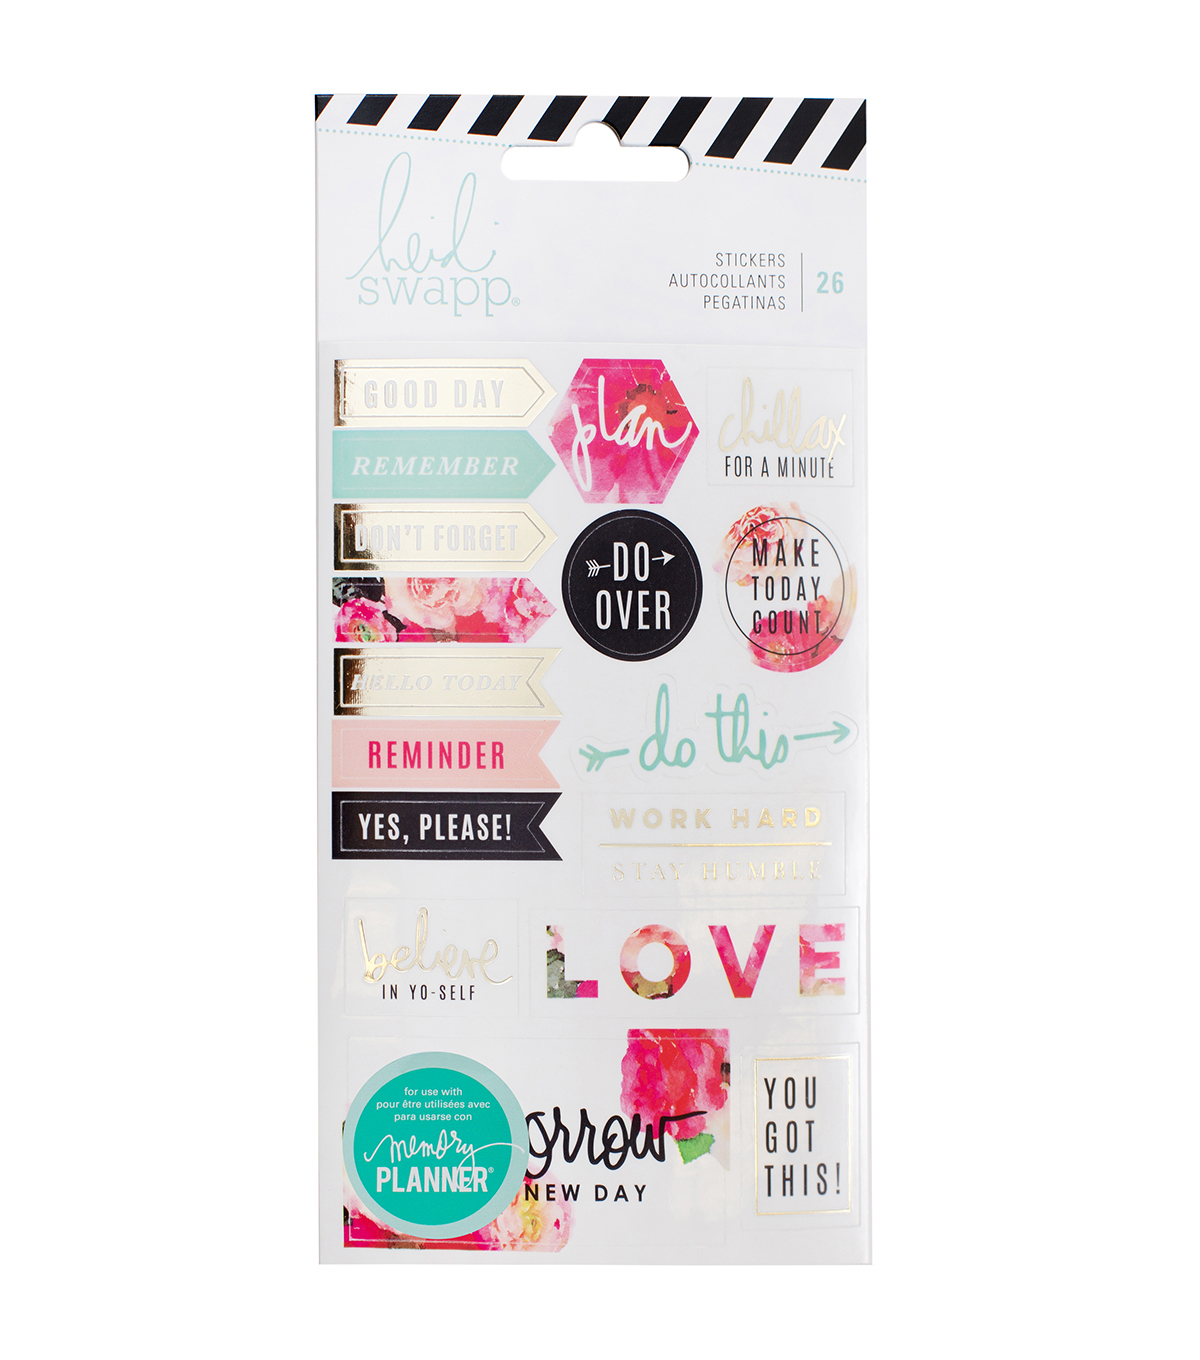 Heidi Swapp Memory Planner Pack of 26 Stickers-Floral